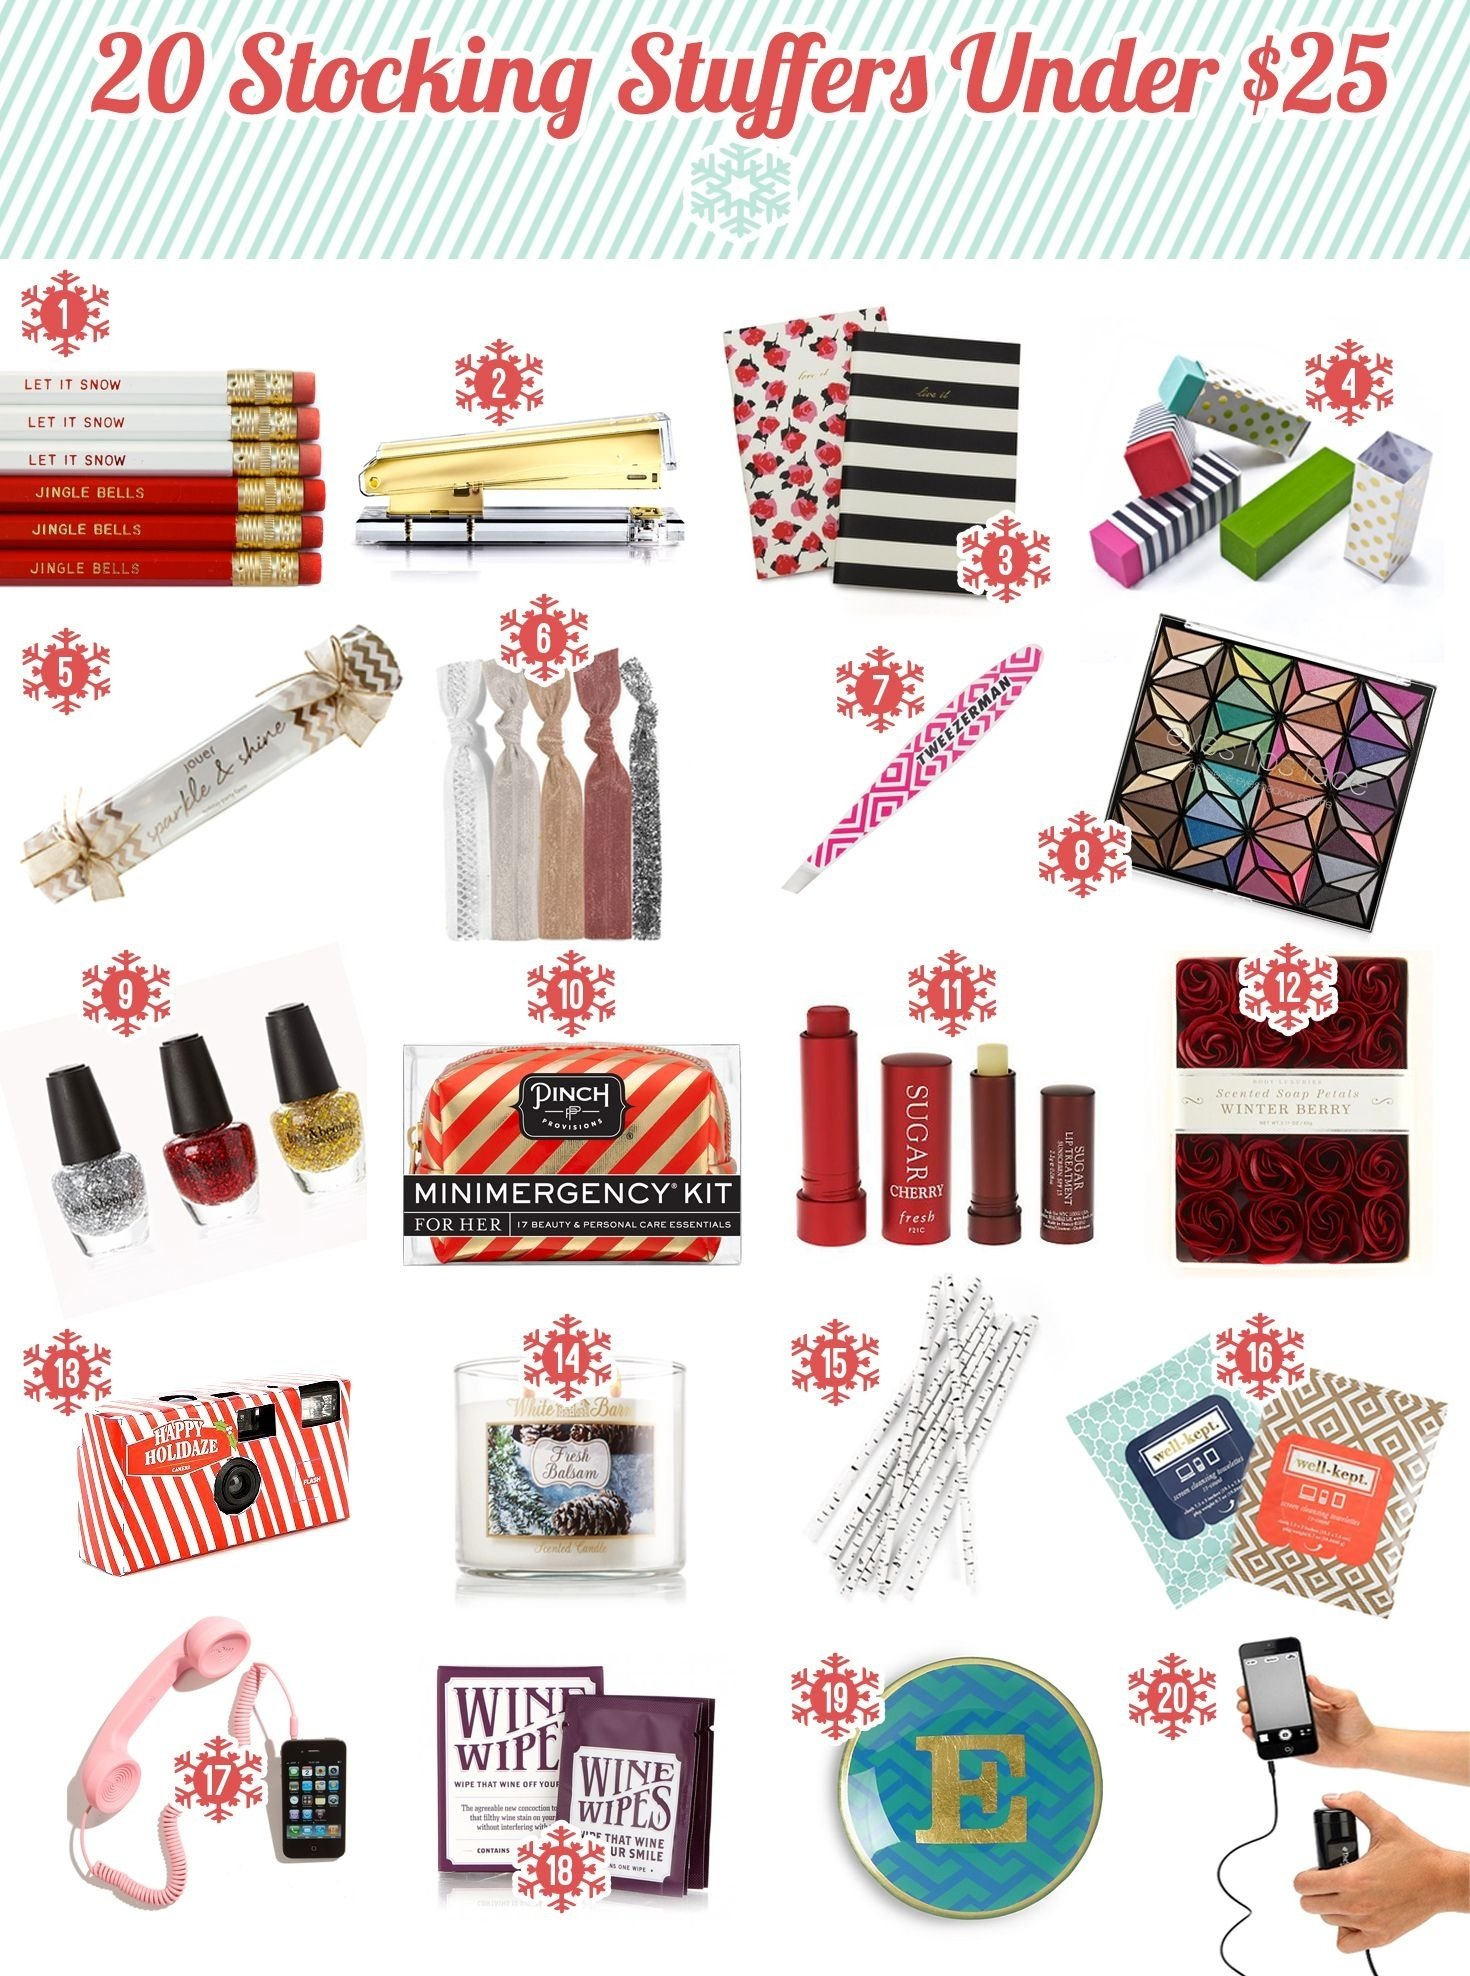 10 Gorgeous Best Christmas Gift Ideas 2013 2013 holiday gift guide secret santa gift ideas under 25 most are 2021